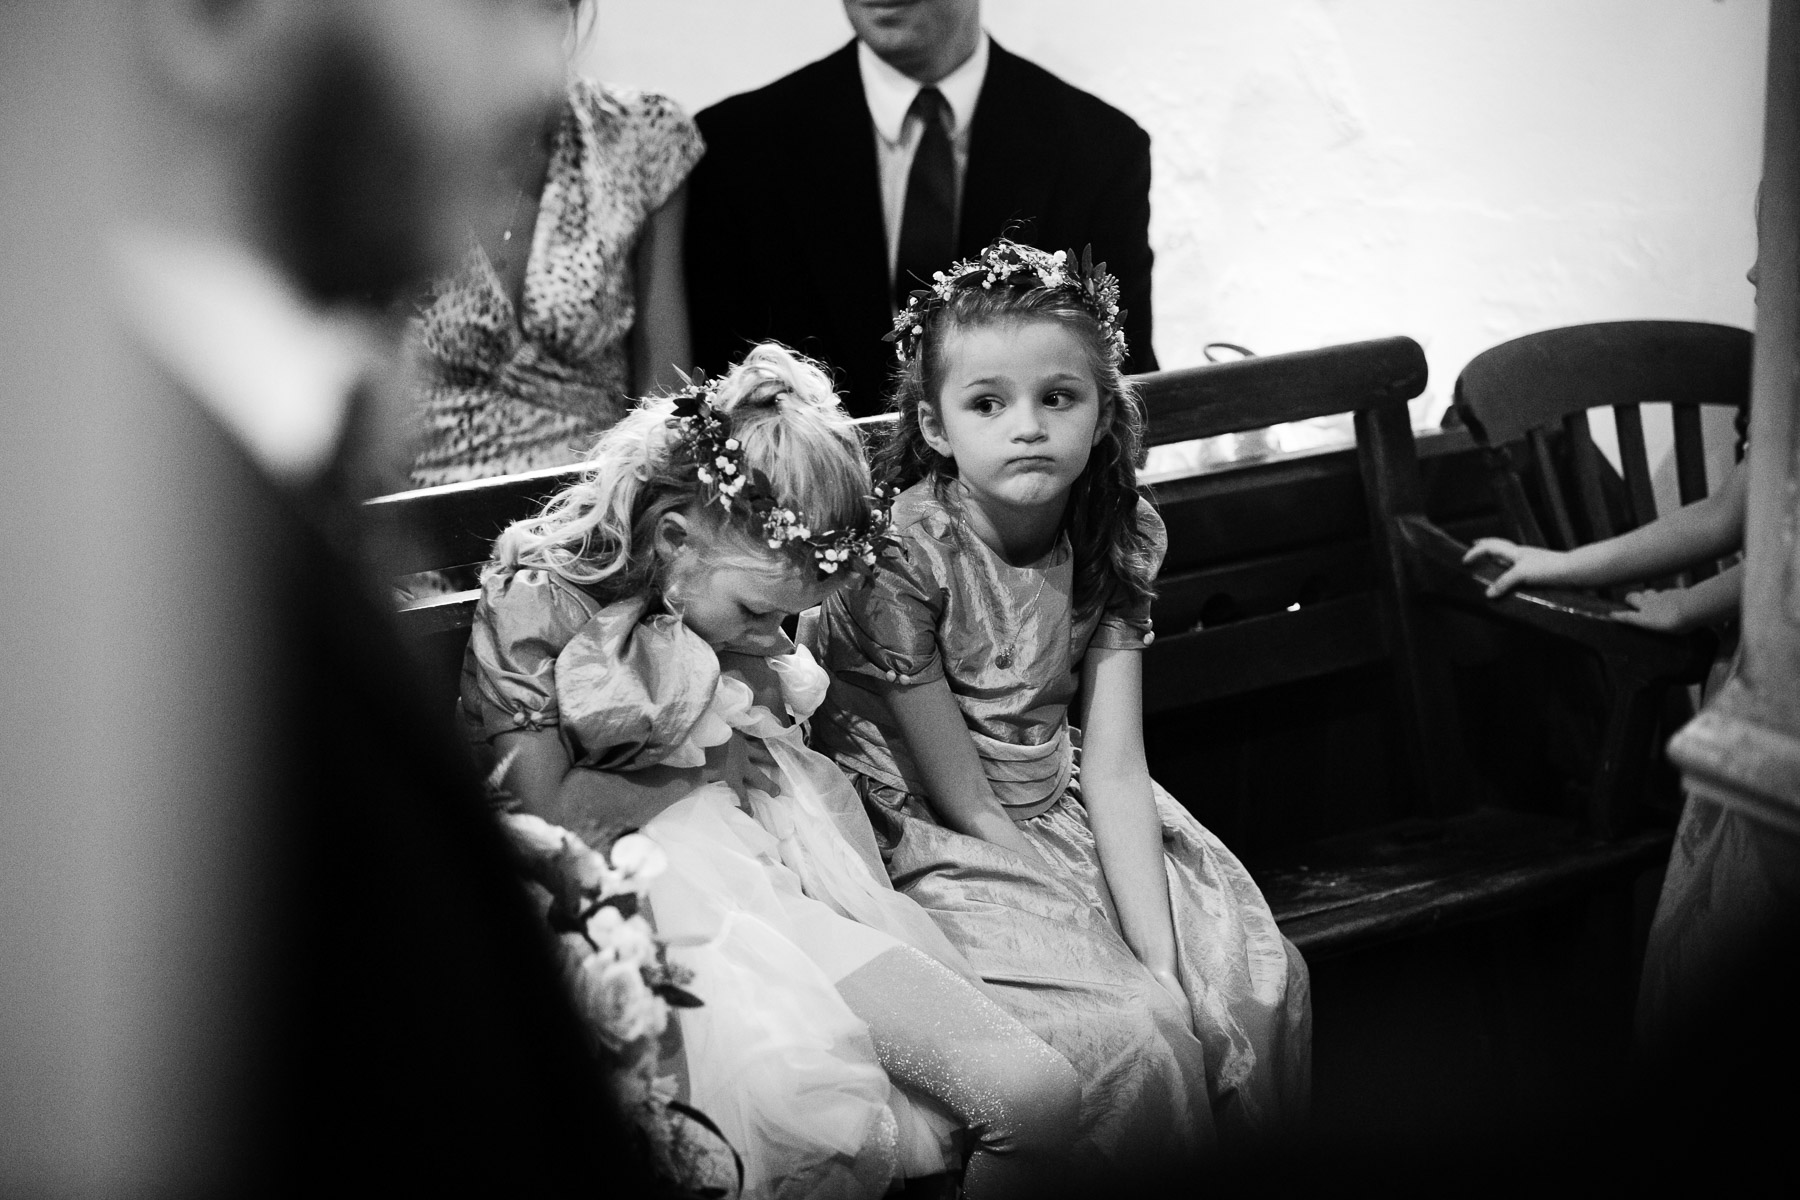 london-documentary-wedding-photographer 010.JPG